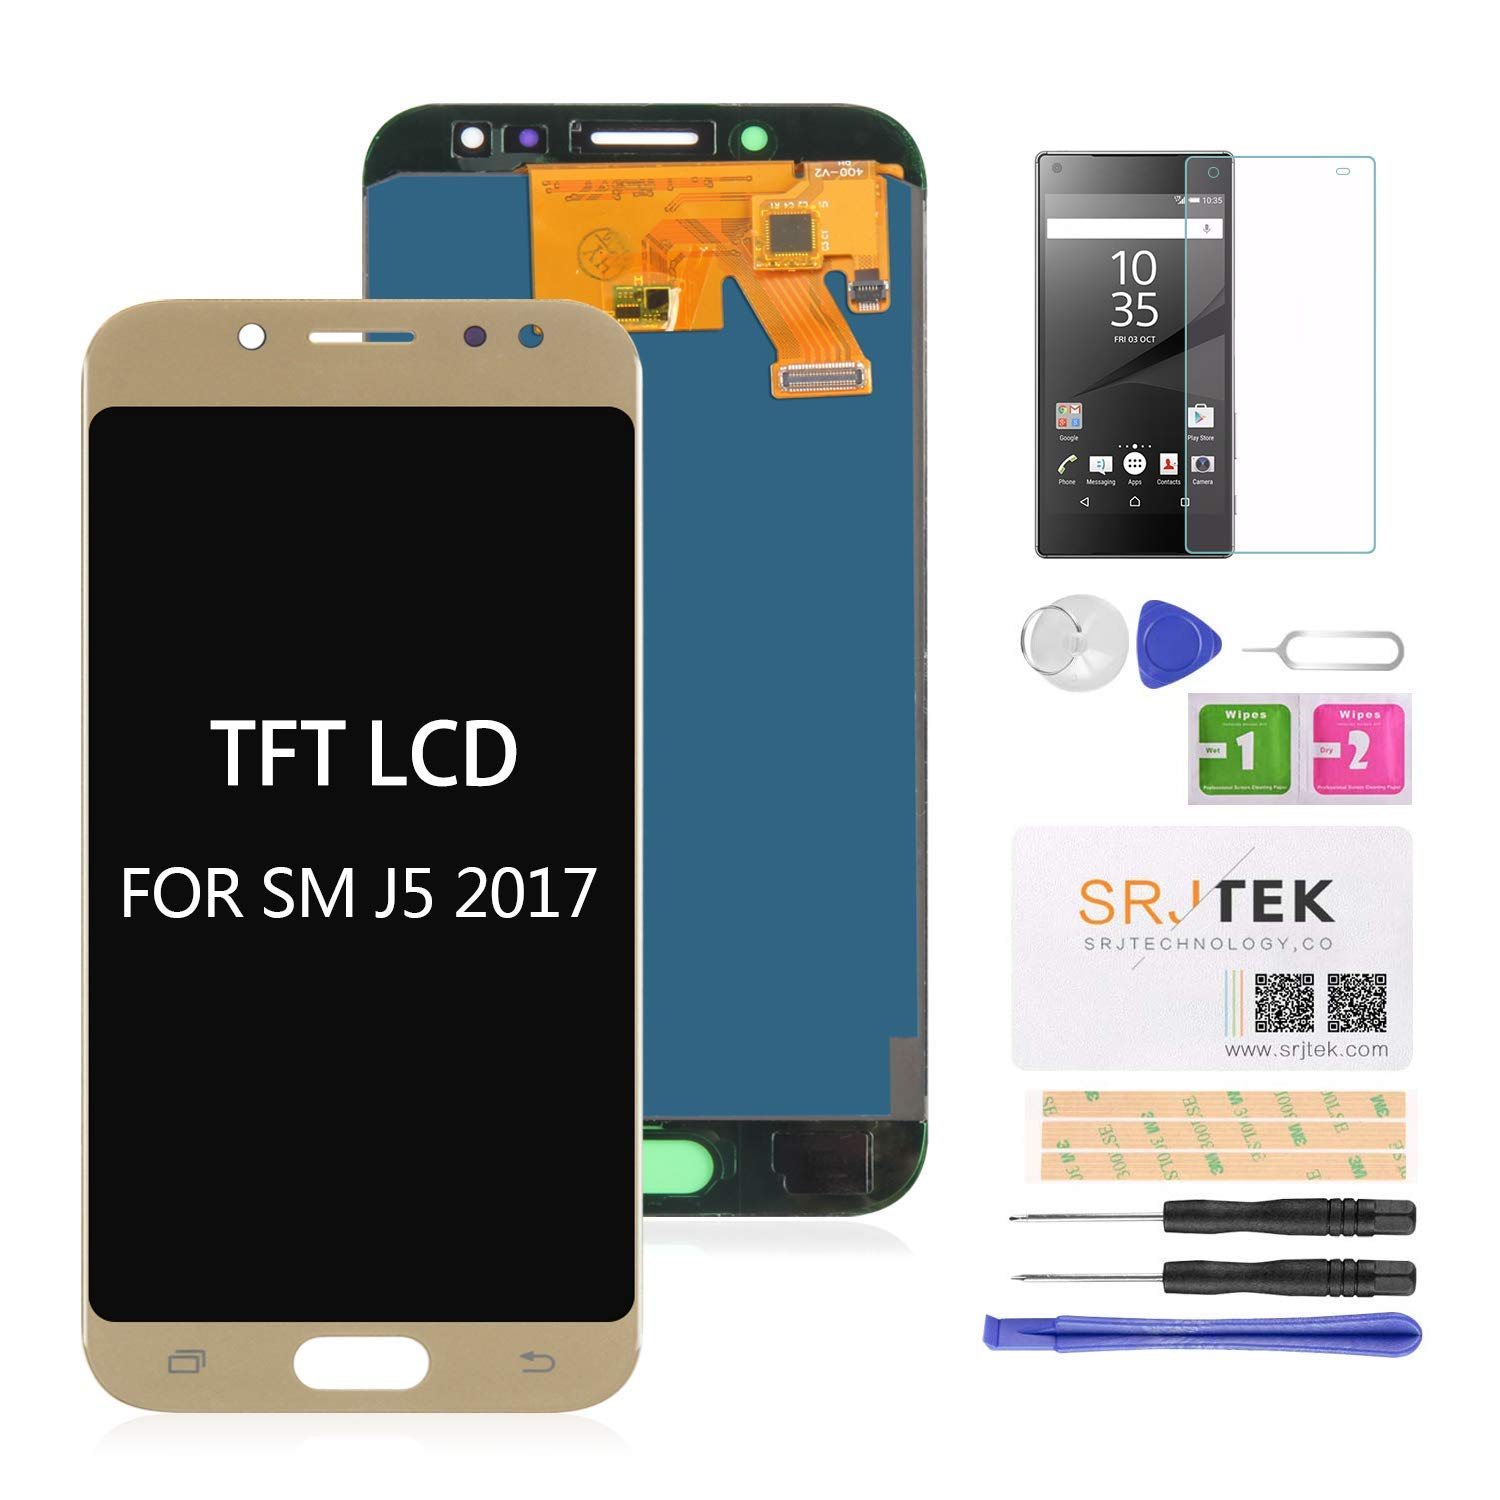 for Samsung Galaxy J5 Pro Screen Replacement-TFT LCD Screen for Samsung J5 2017 J530 J530F J530S J530K J530L J530FM J530Y J530YM Display Touch Digitizer Glass Assembly,(NOT AMOLED) Gold